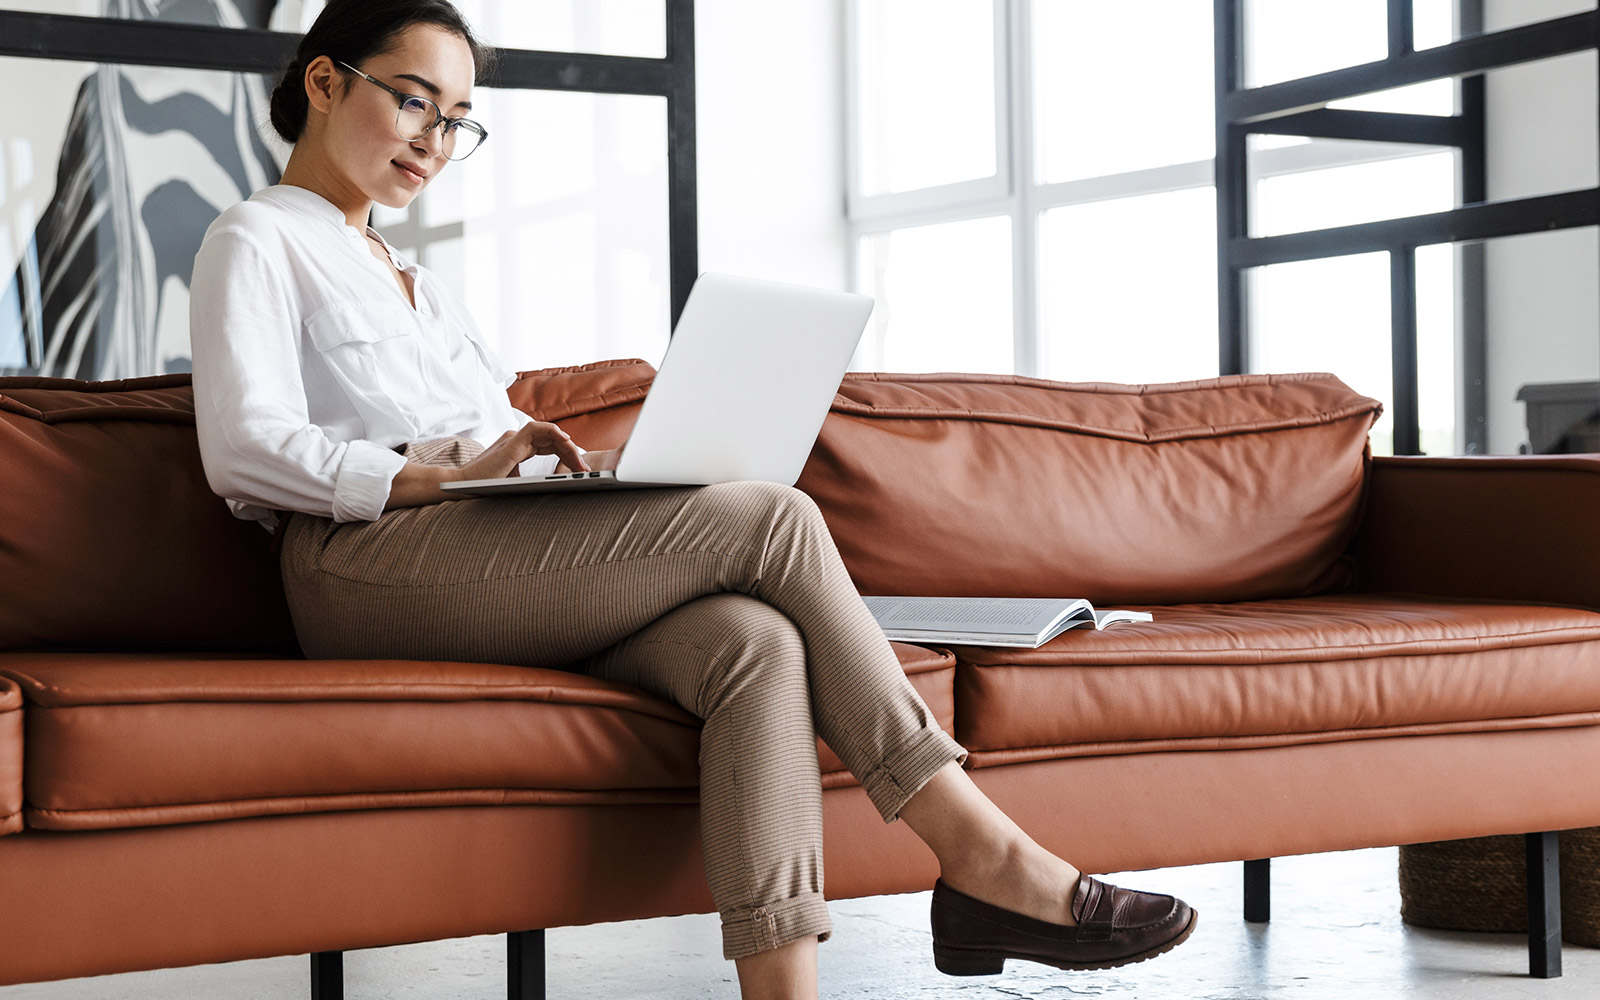 Woman sitting on a couch looking at her laptop